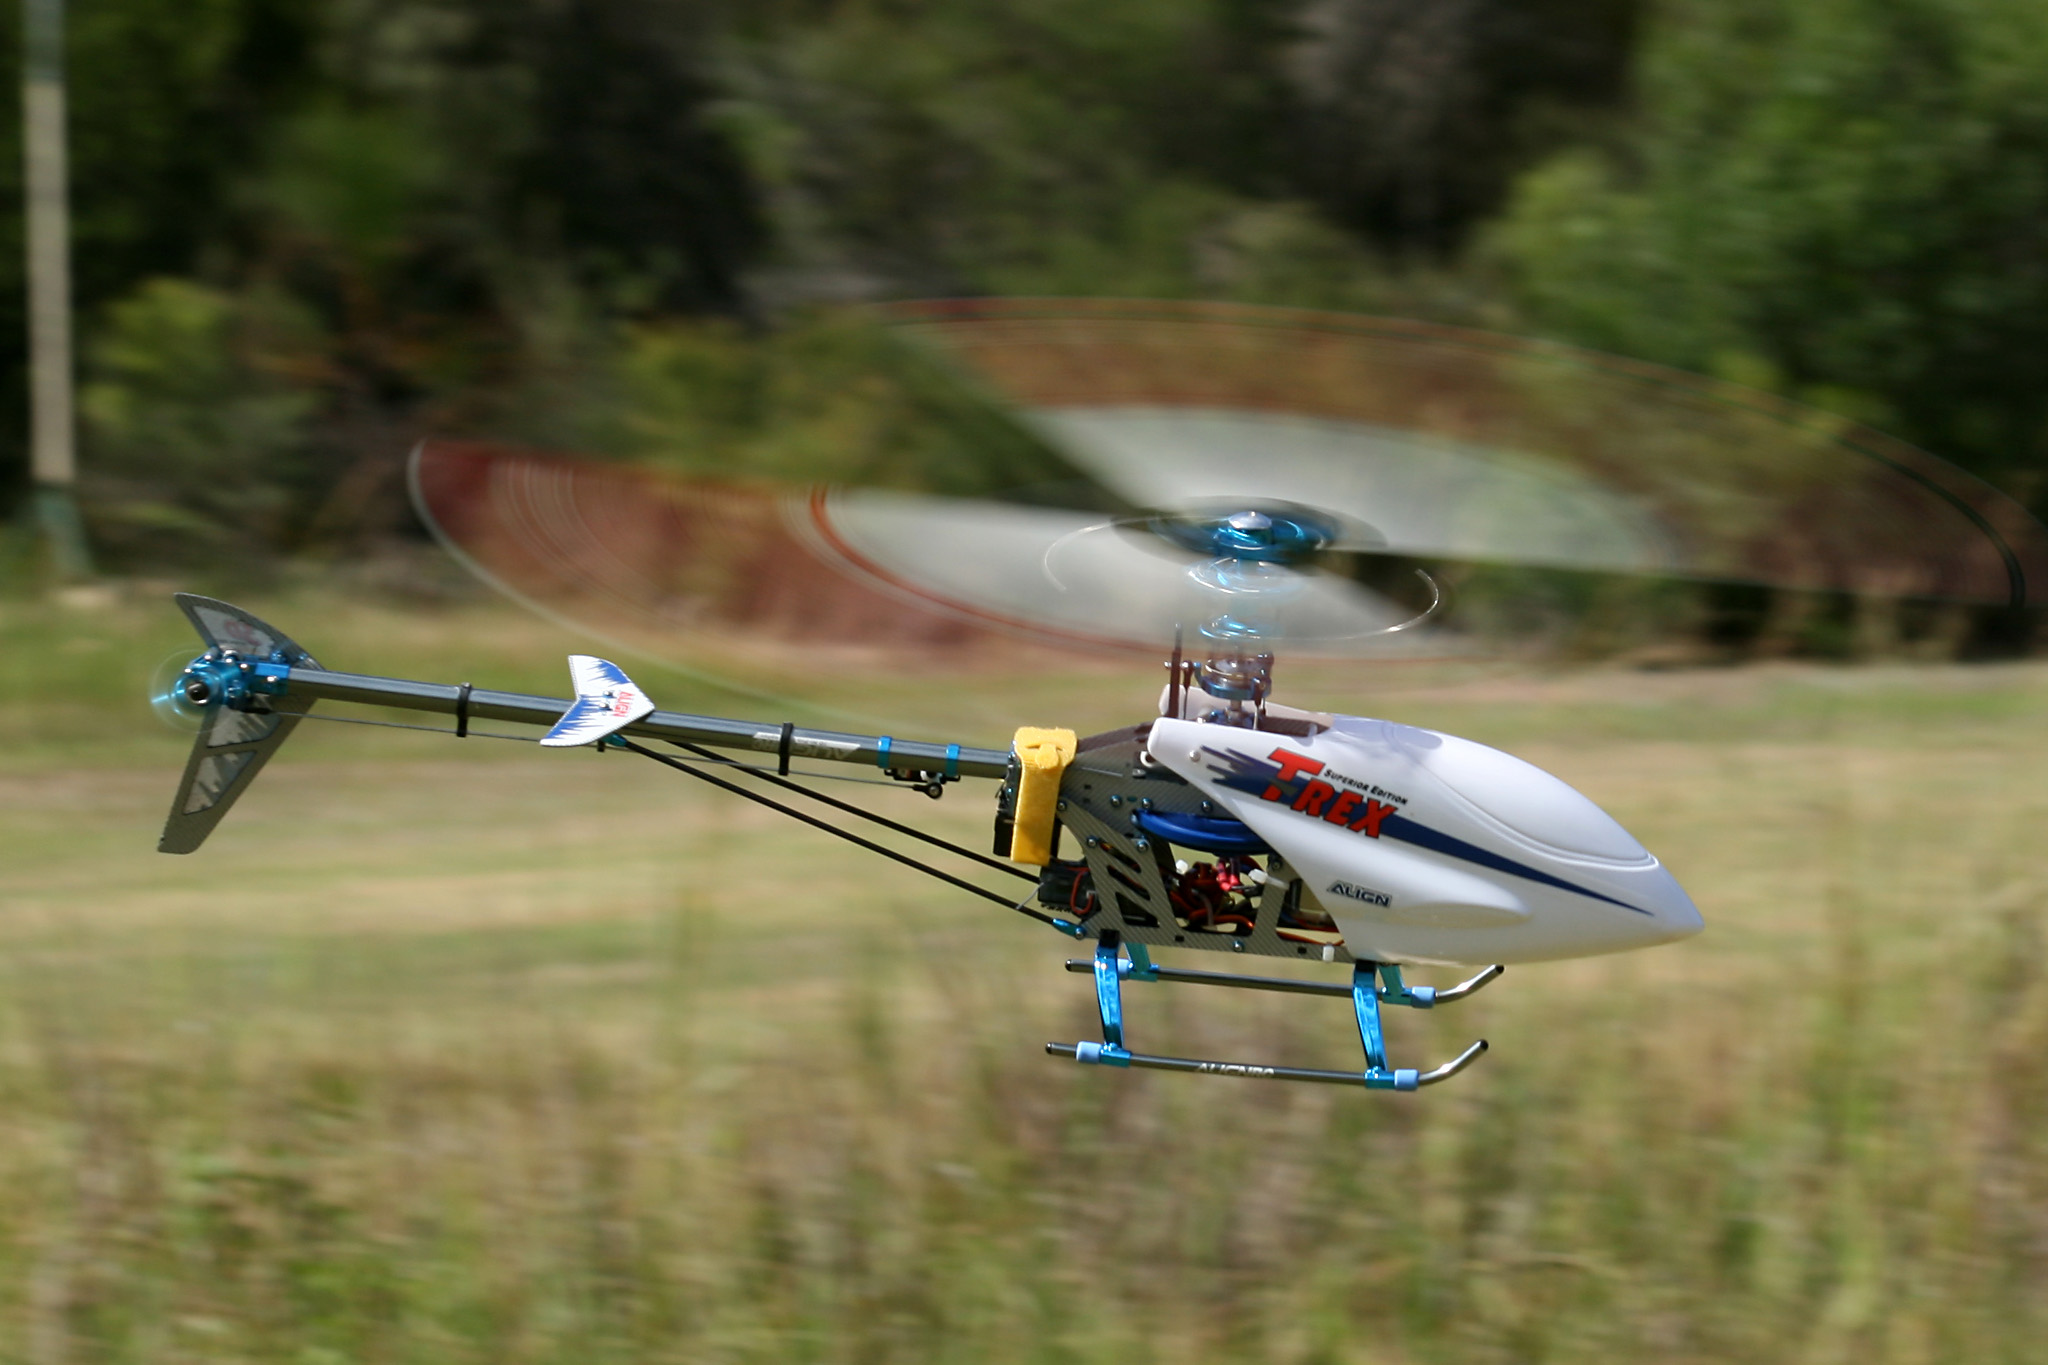 gas remote control helicopter with File Align T Rex 2386 on Worlds Largest Rc Model Airplane 0113716 besides File Jet engine damaged by bird strike further Goblin Gasser Conversion Version 2 additionally Watch further Udi R c U1 Army Black Hawk Uh 60 P 137422.